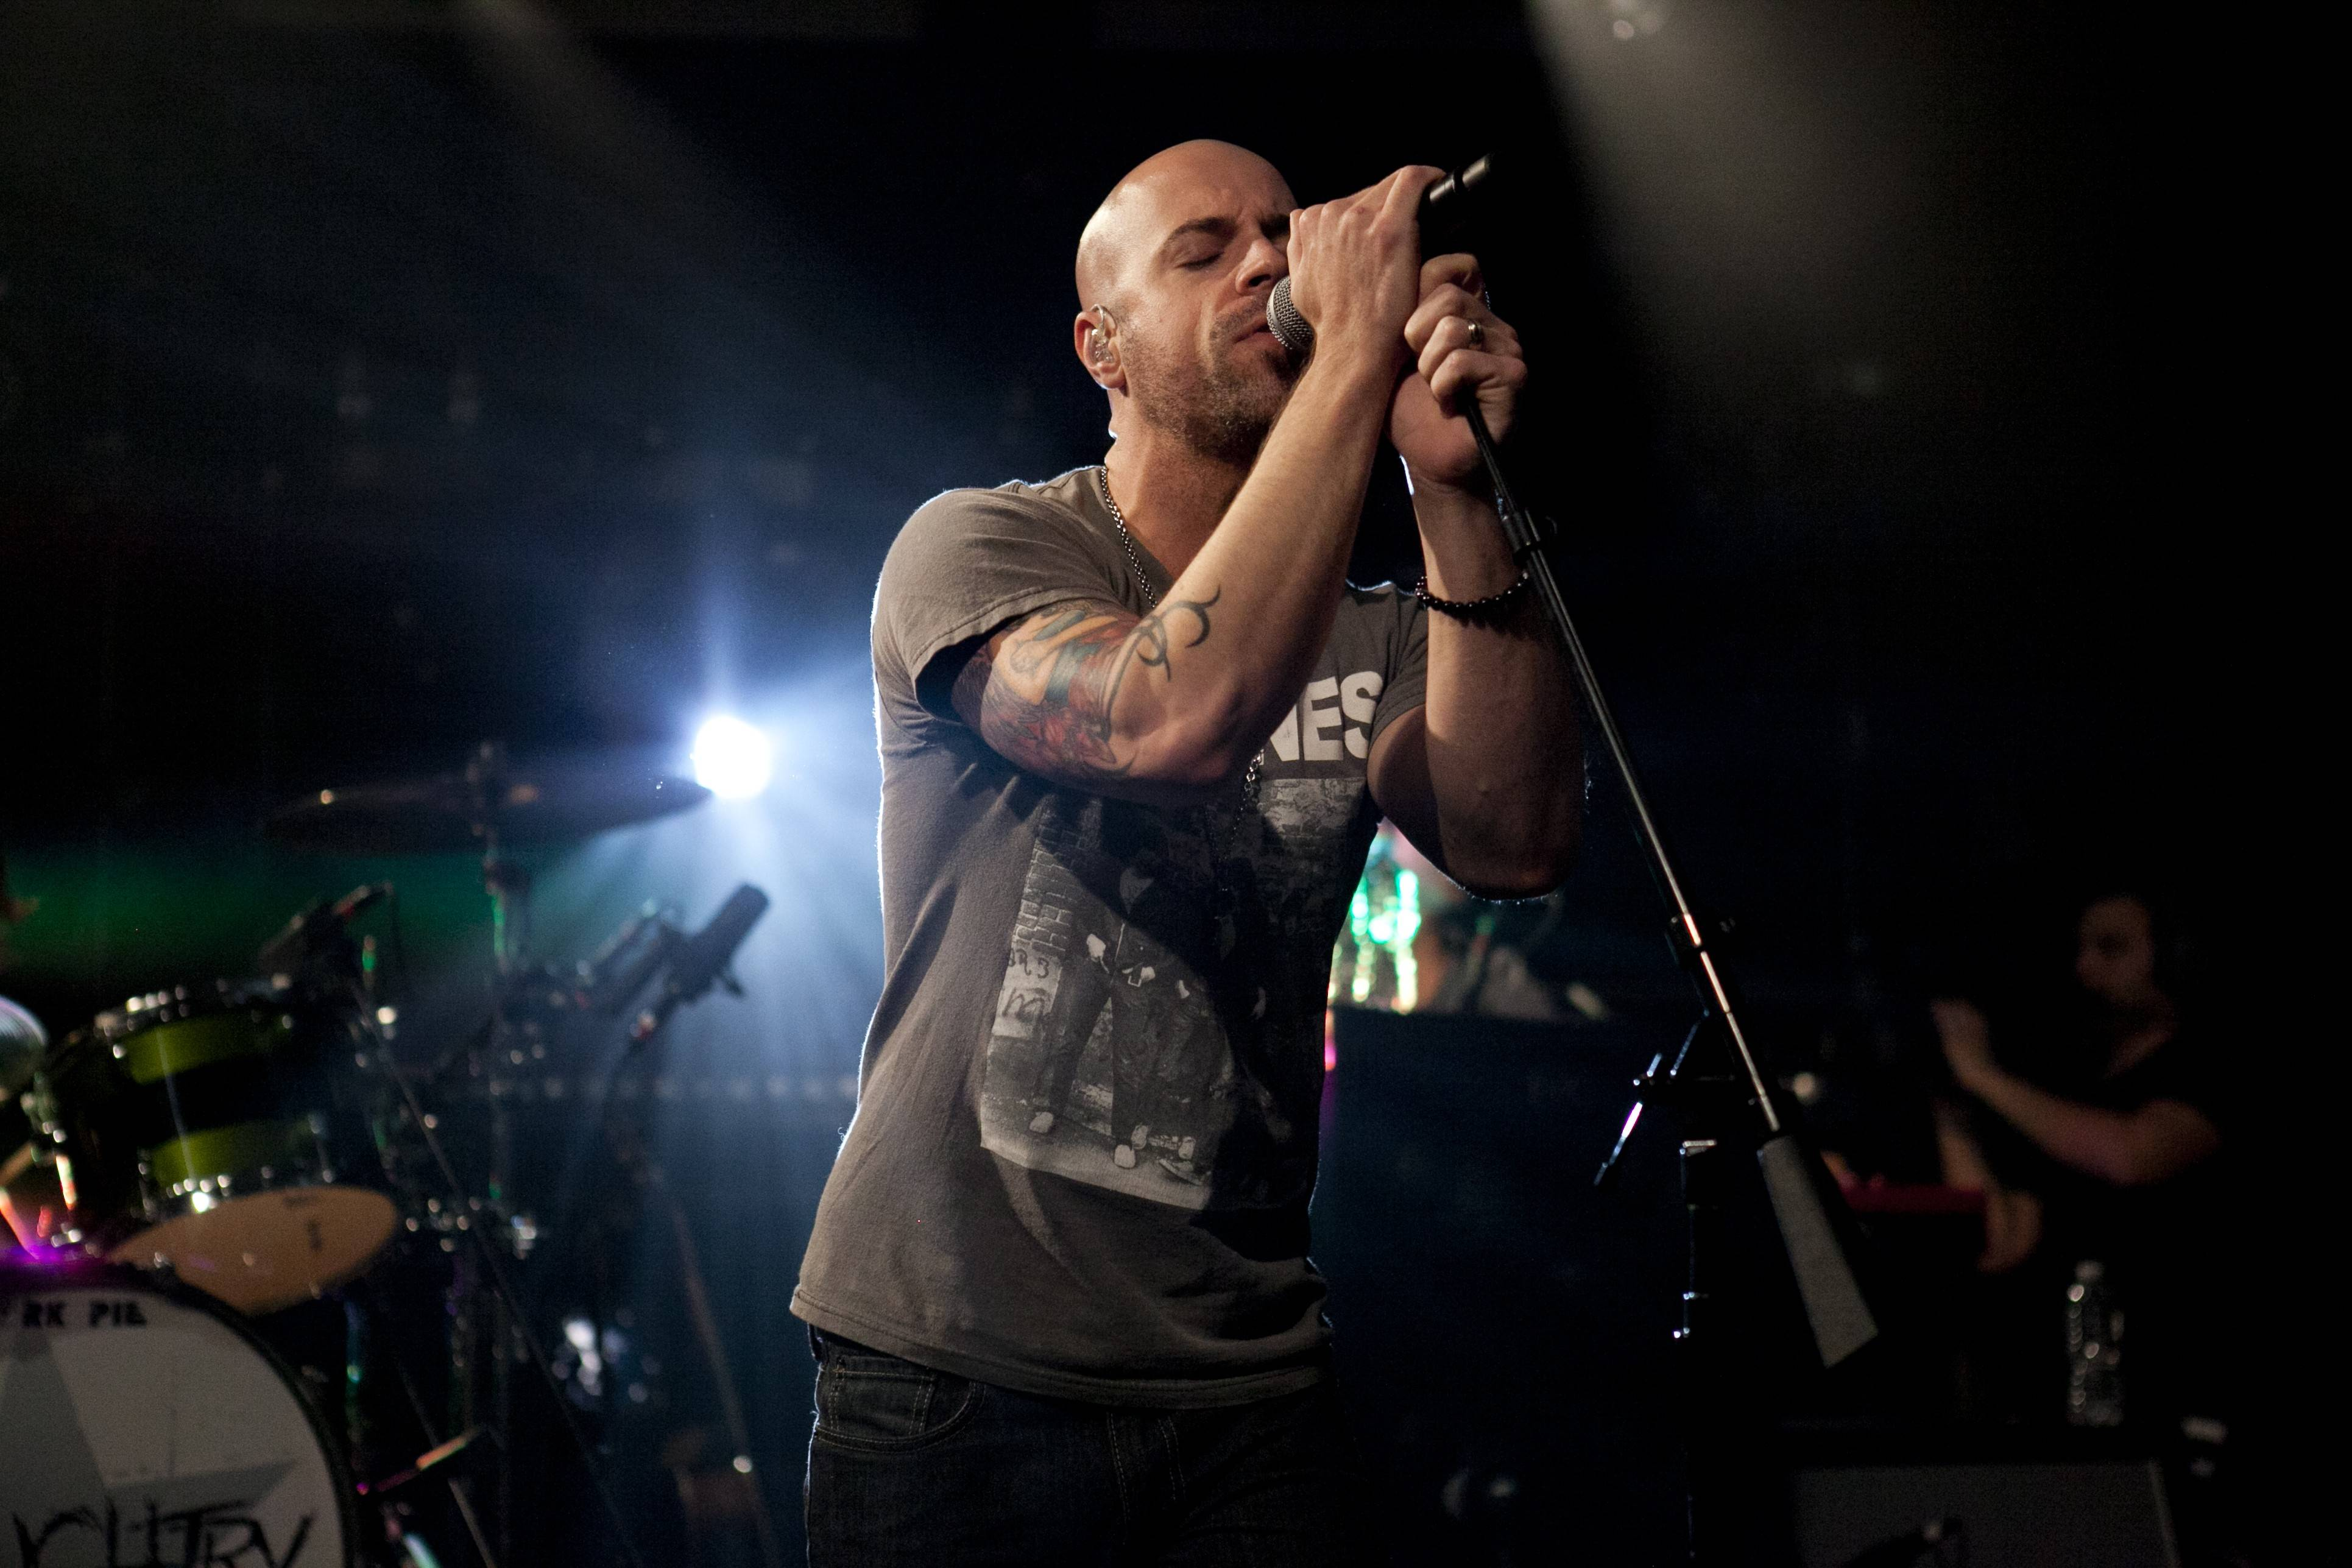 Chris Daughtry and his band will perform Sept. 5 during the Naperville Jaycees' Last Fling celebration in downtown Naperv